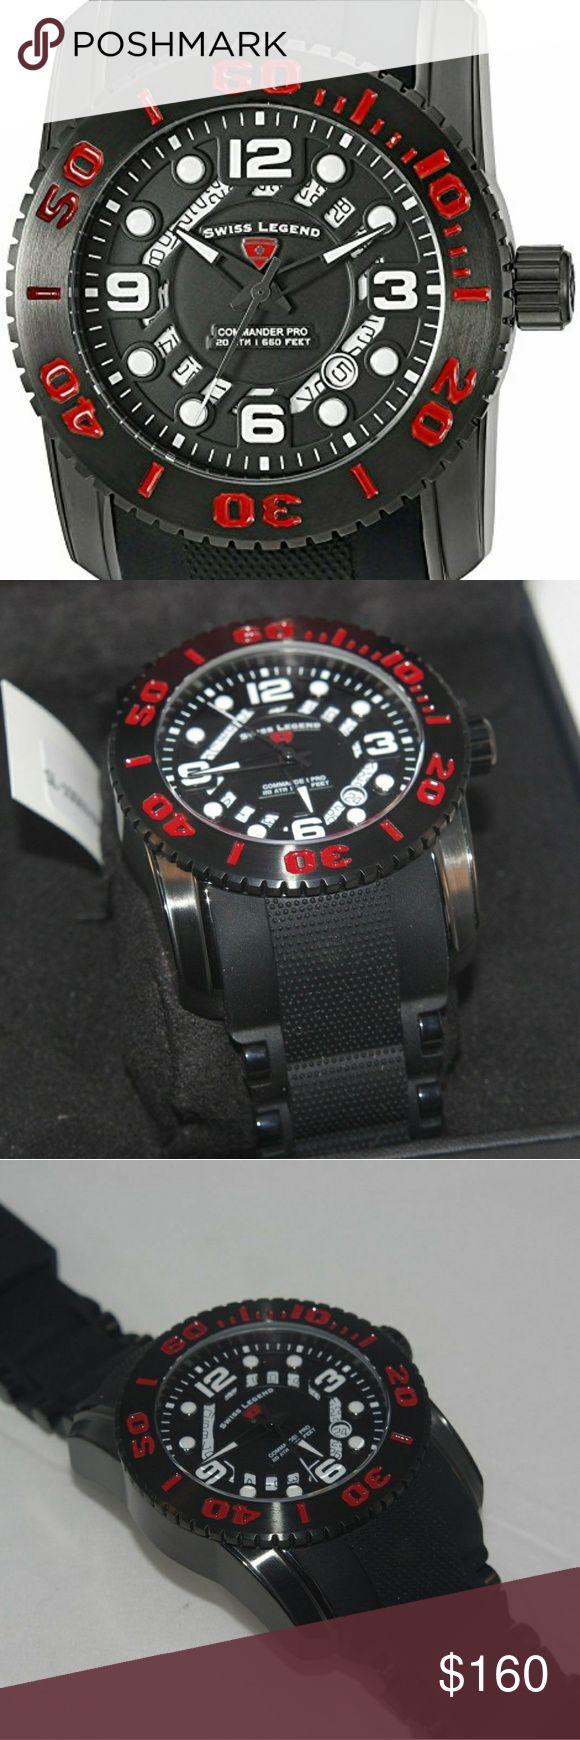 Swiss Legend Commander Pro 47mm Dive Watch Add a vibrant splash of color with a new Swiss Legend Commander Pro men's watch.  Features: Date window between 4:00 and 5:00; unidirectional bezel with red accents; screw-down crown; sapphitek crystalBlack dial with black, gunmetal and white hands and black and white hour markers and Arabic numerals; luminous; black IP stainless steel caseSwiss-quartz MovementCase Diameter: 47mmWater Resistant 200m (660ft) Swiss Legend Accessories Watches